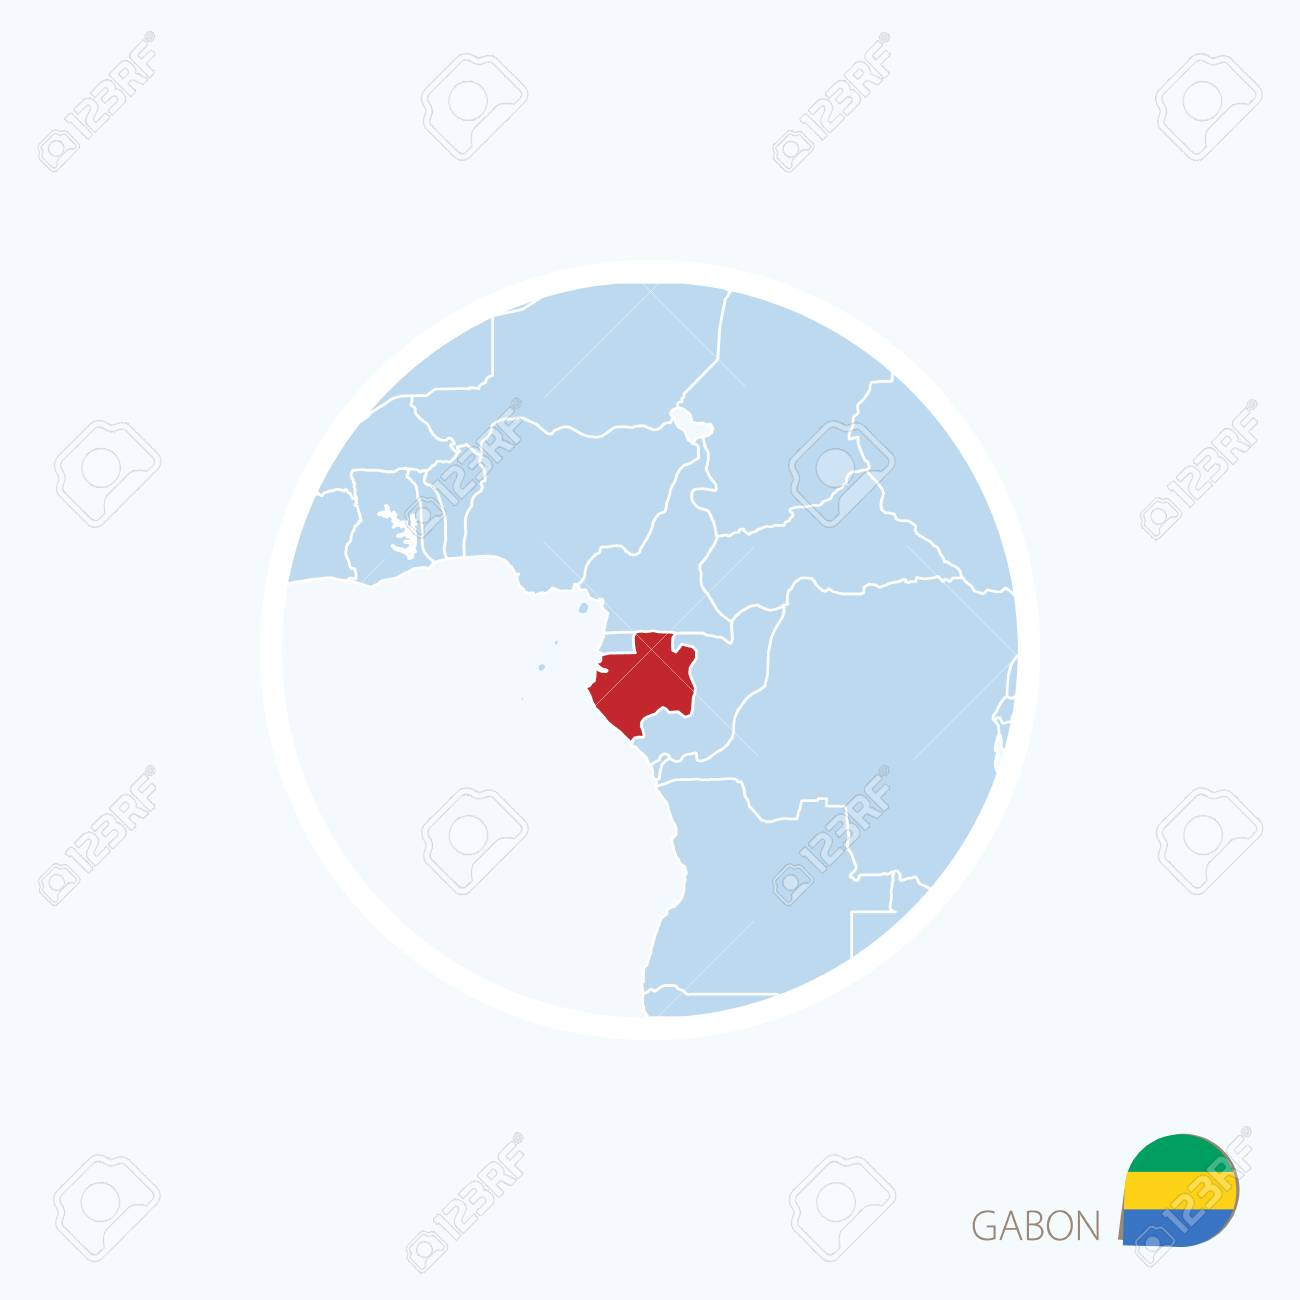 Map Icon Of Gabon Blue Map Of Central Africa With Highlighted